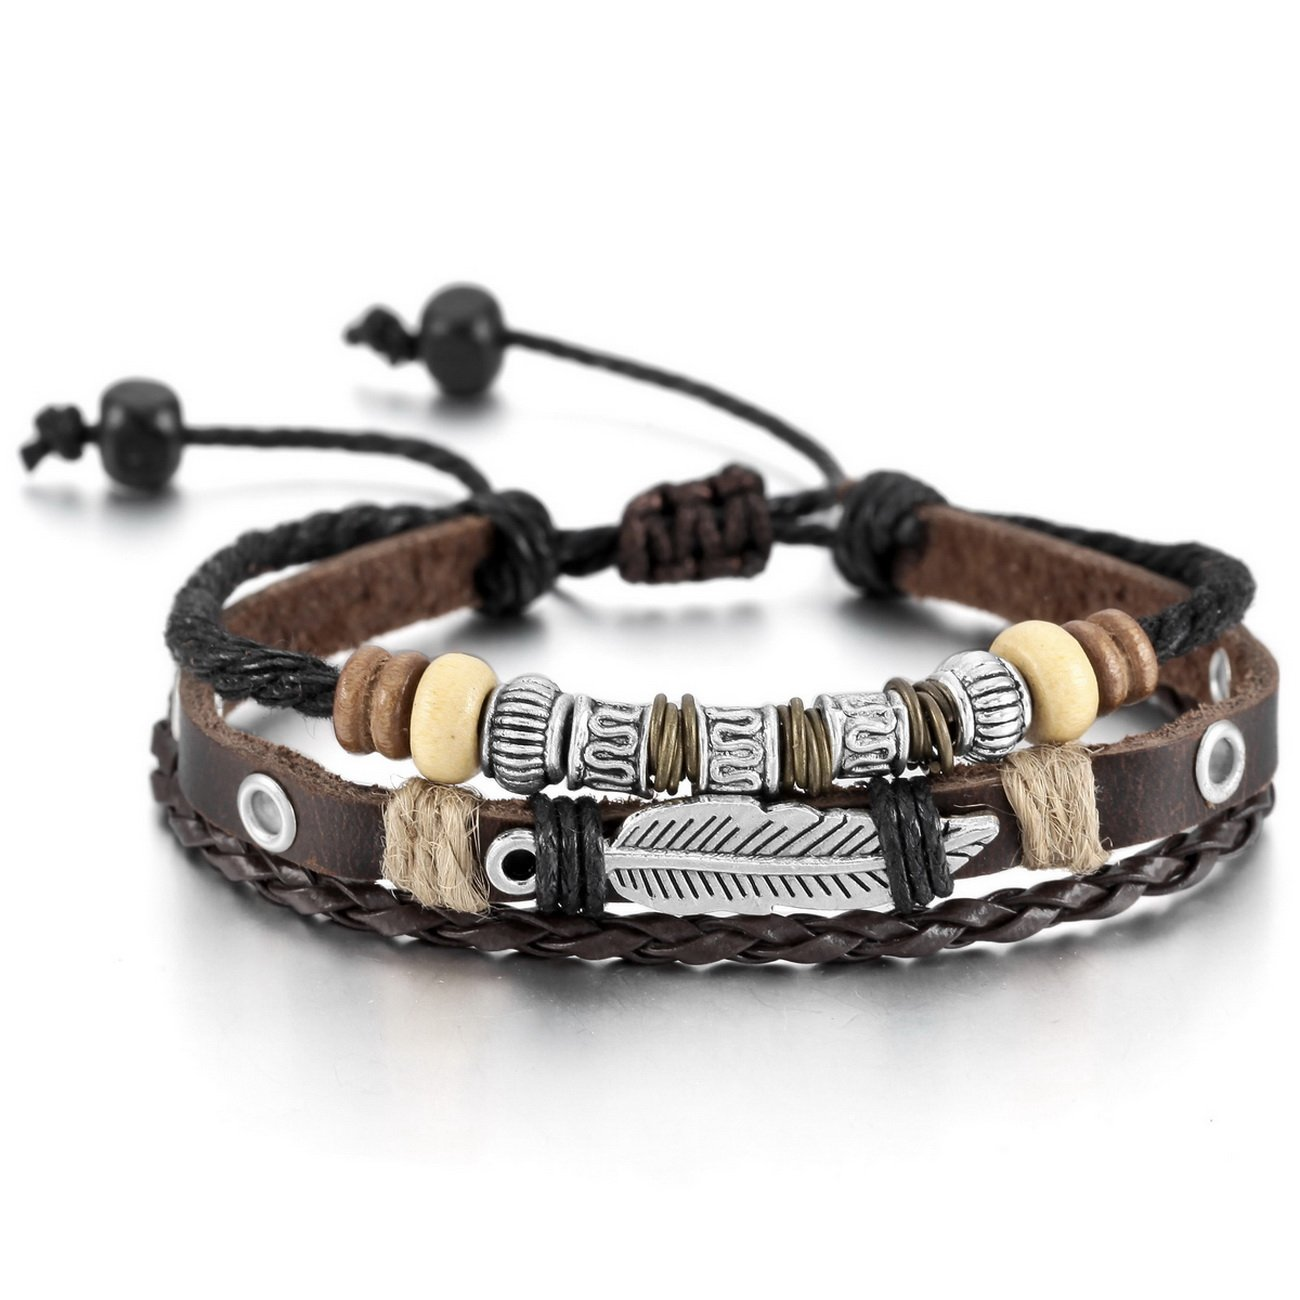 MOWOM Brown Silver Tone Alloy Genuine Leather Bracelet Bangle Rope Angel Wing Feather Surfer Wrap Adjustable ca5020027